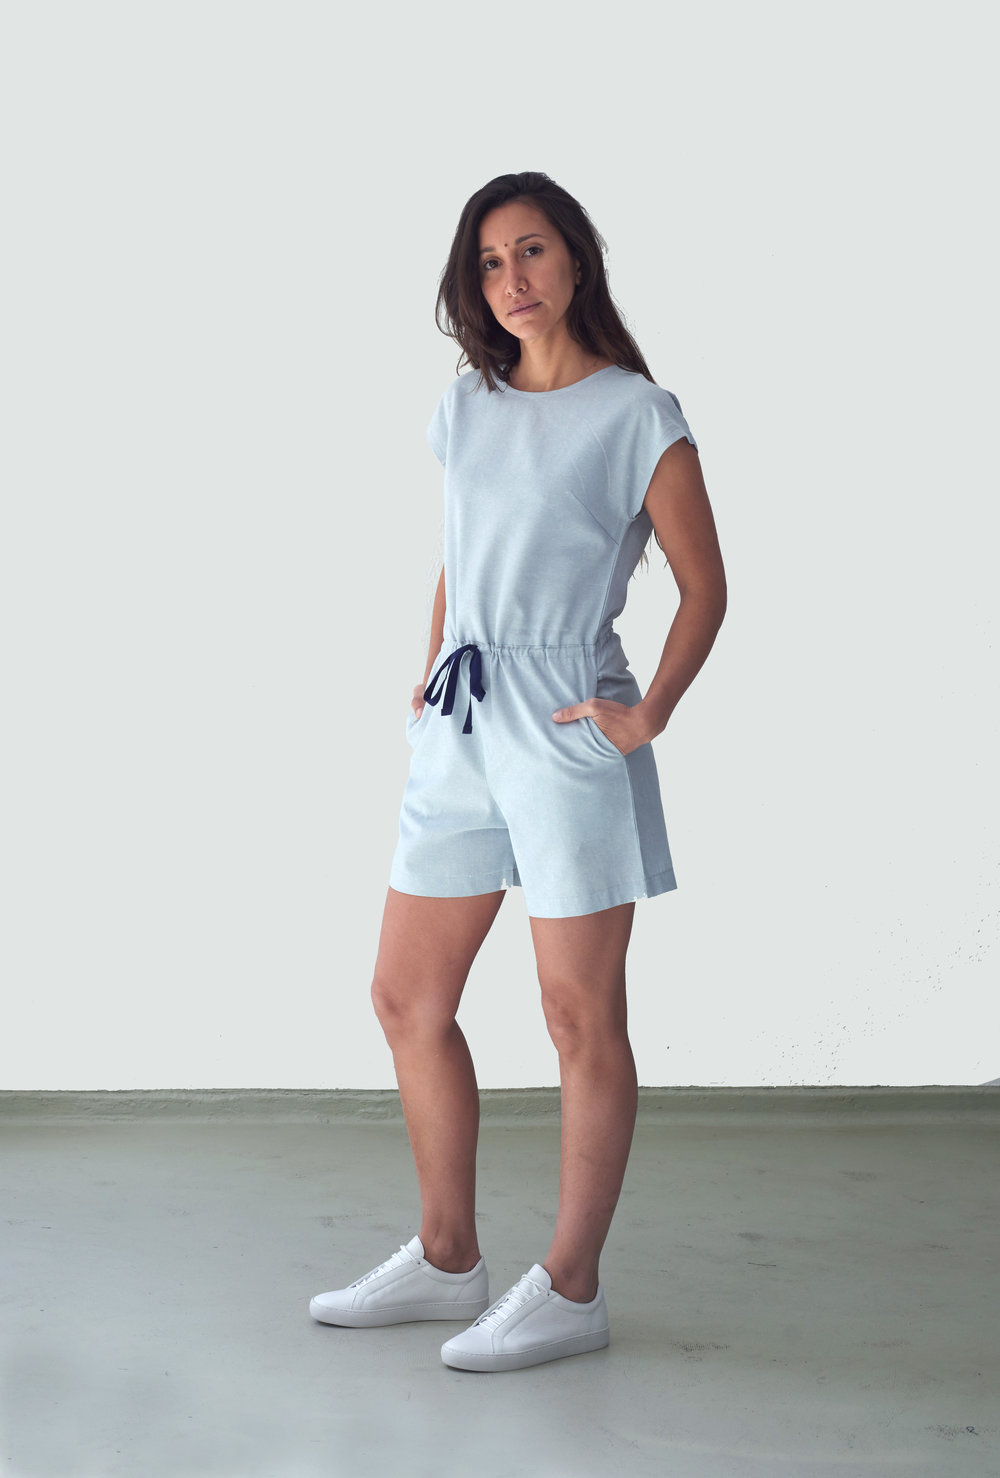 ice playsuit.jpg